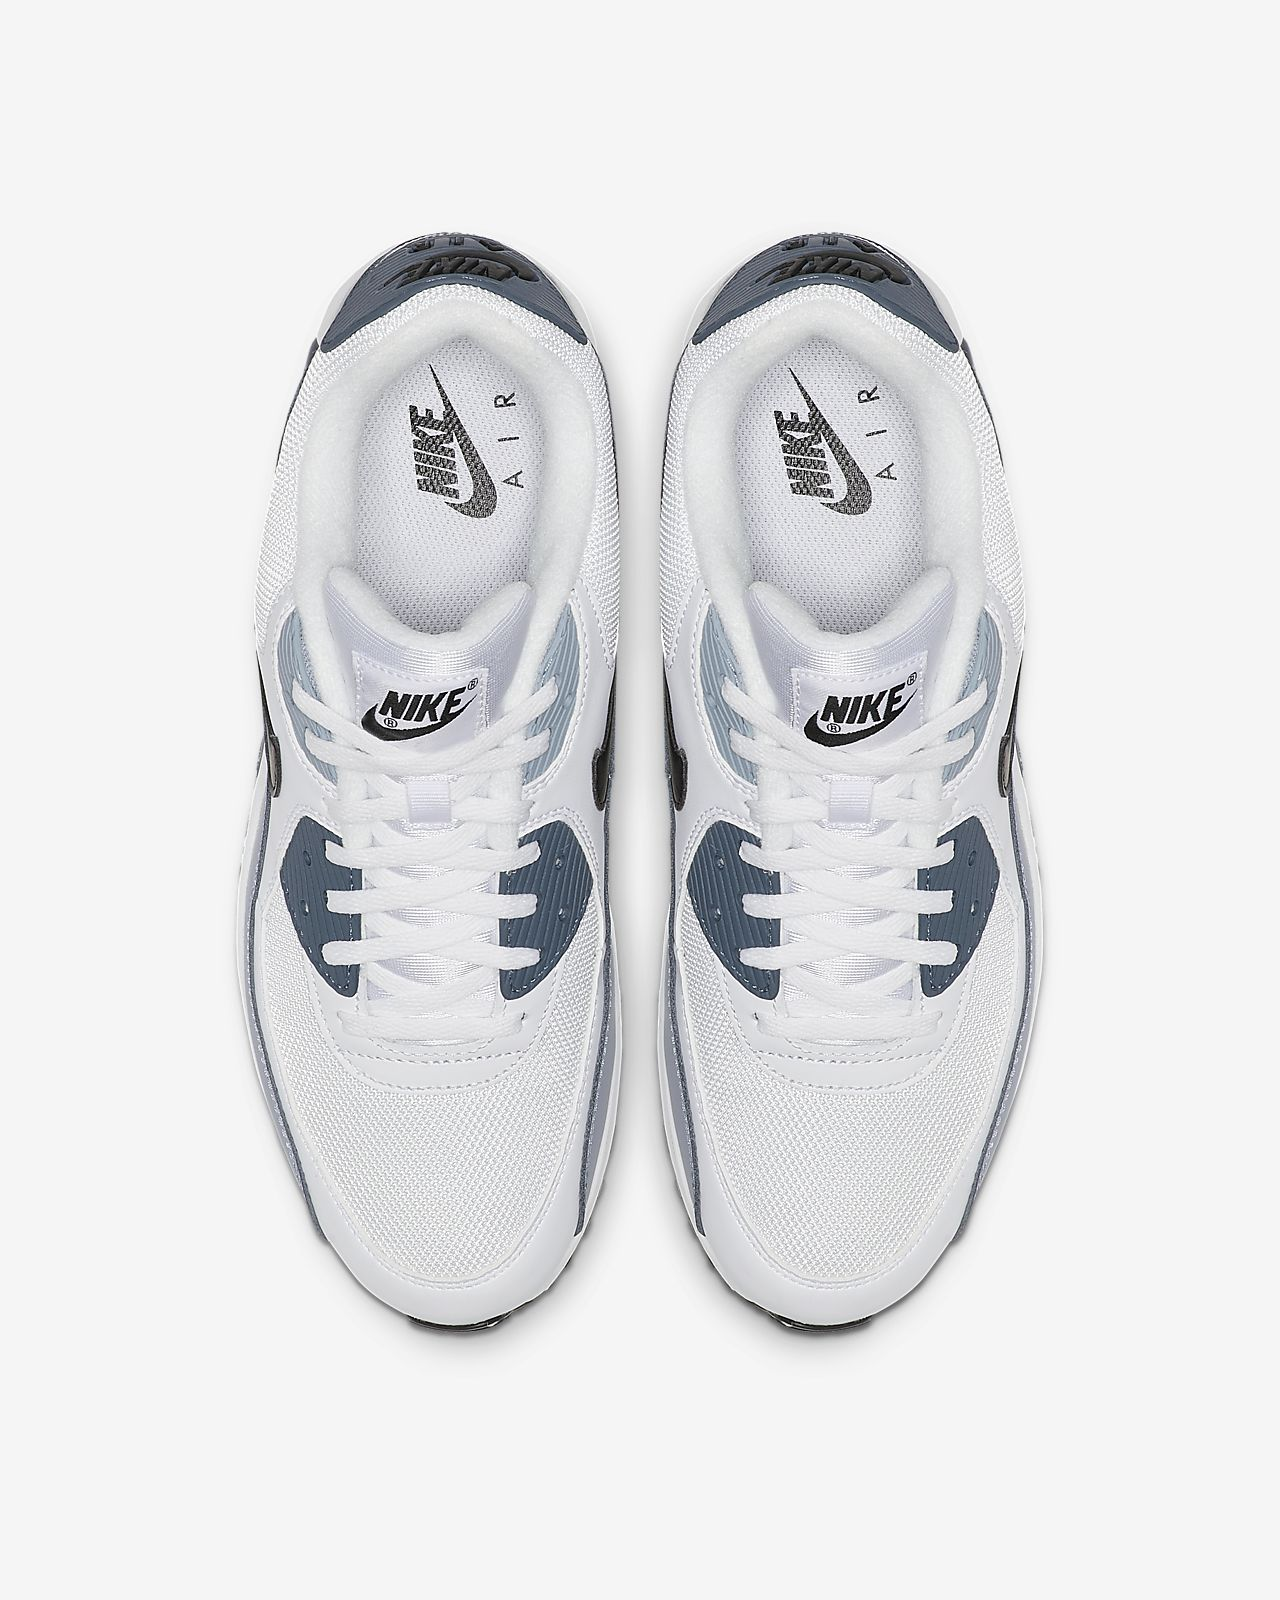 a8e0a00b9b Nike Air Max 90 Essential Men's Shoe. Nike.com AU